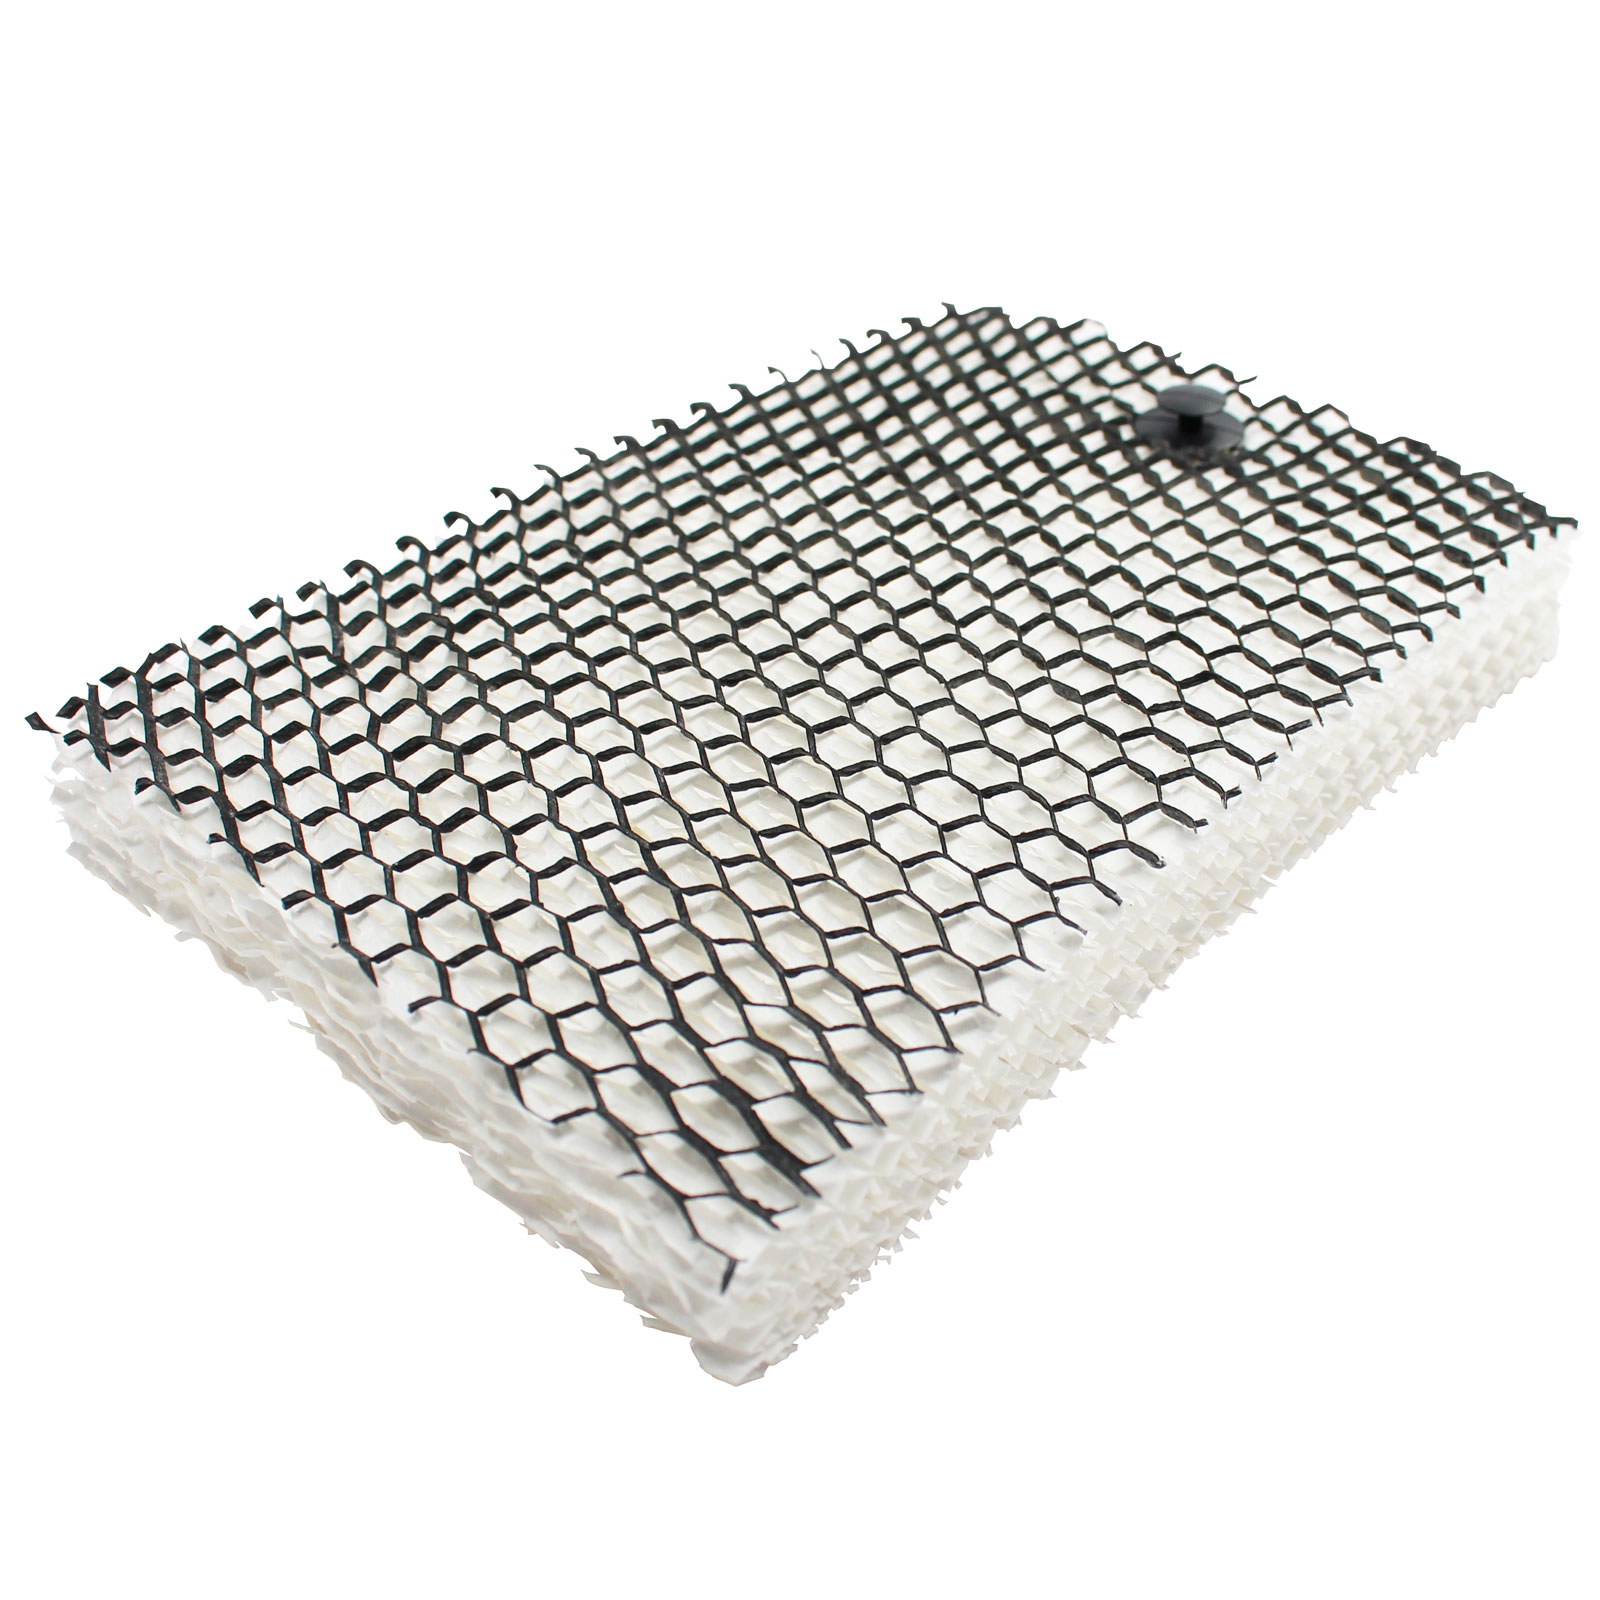 Replacement HWF100 Humidifier Filter for Holmes, Bionaire, Sunbeam - Compatible with Holmes HM630, Bionaire BCM646, Holmes HWF100, Sunbeam SCM630, Bionaire BCM740B, Sunbeam SCM7808, Bionaire BWF100 - image 2 de 4